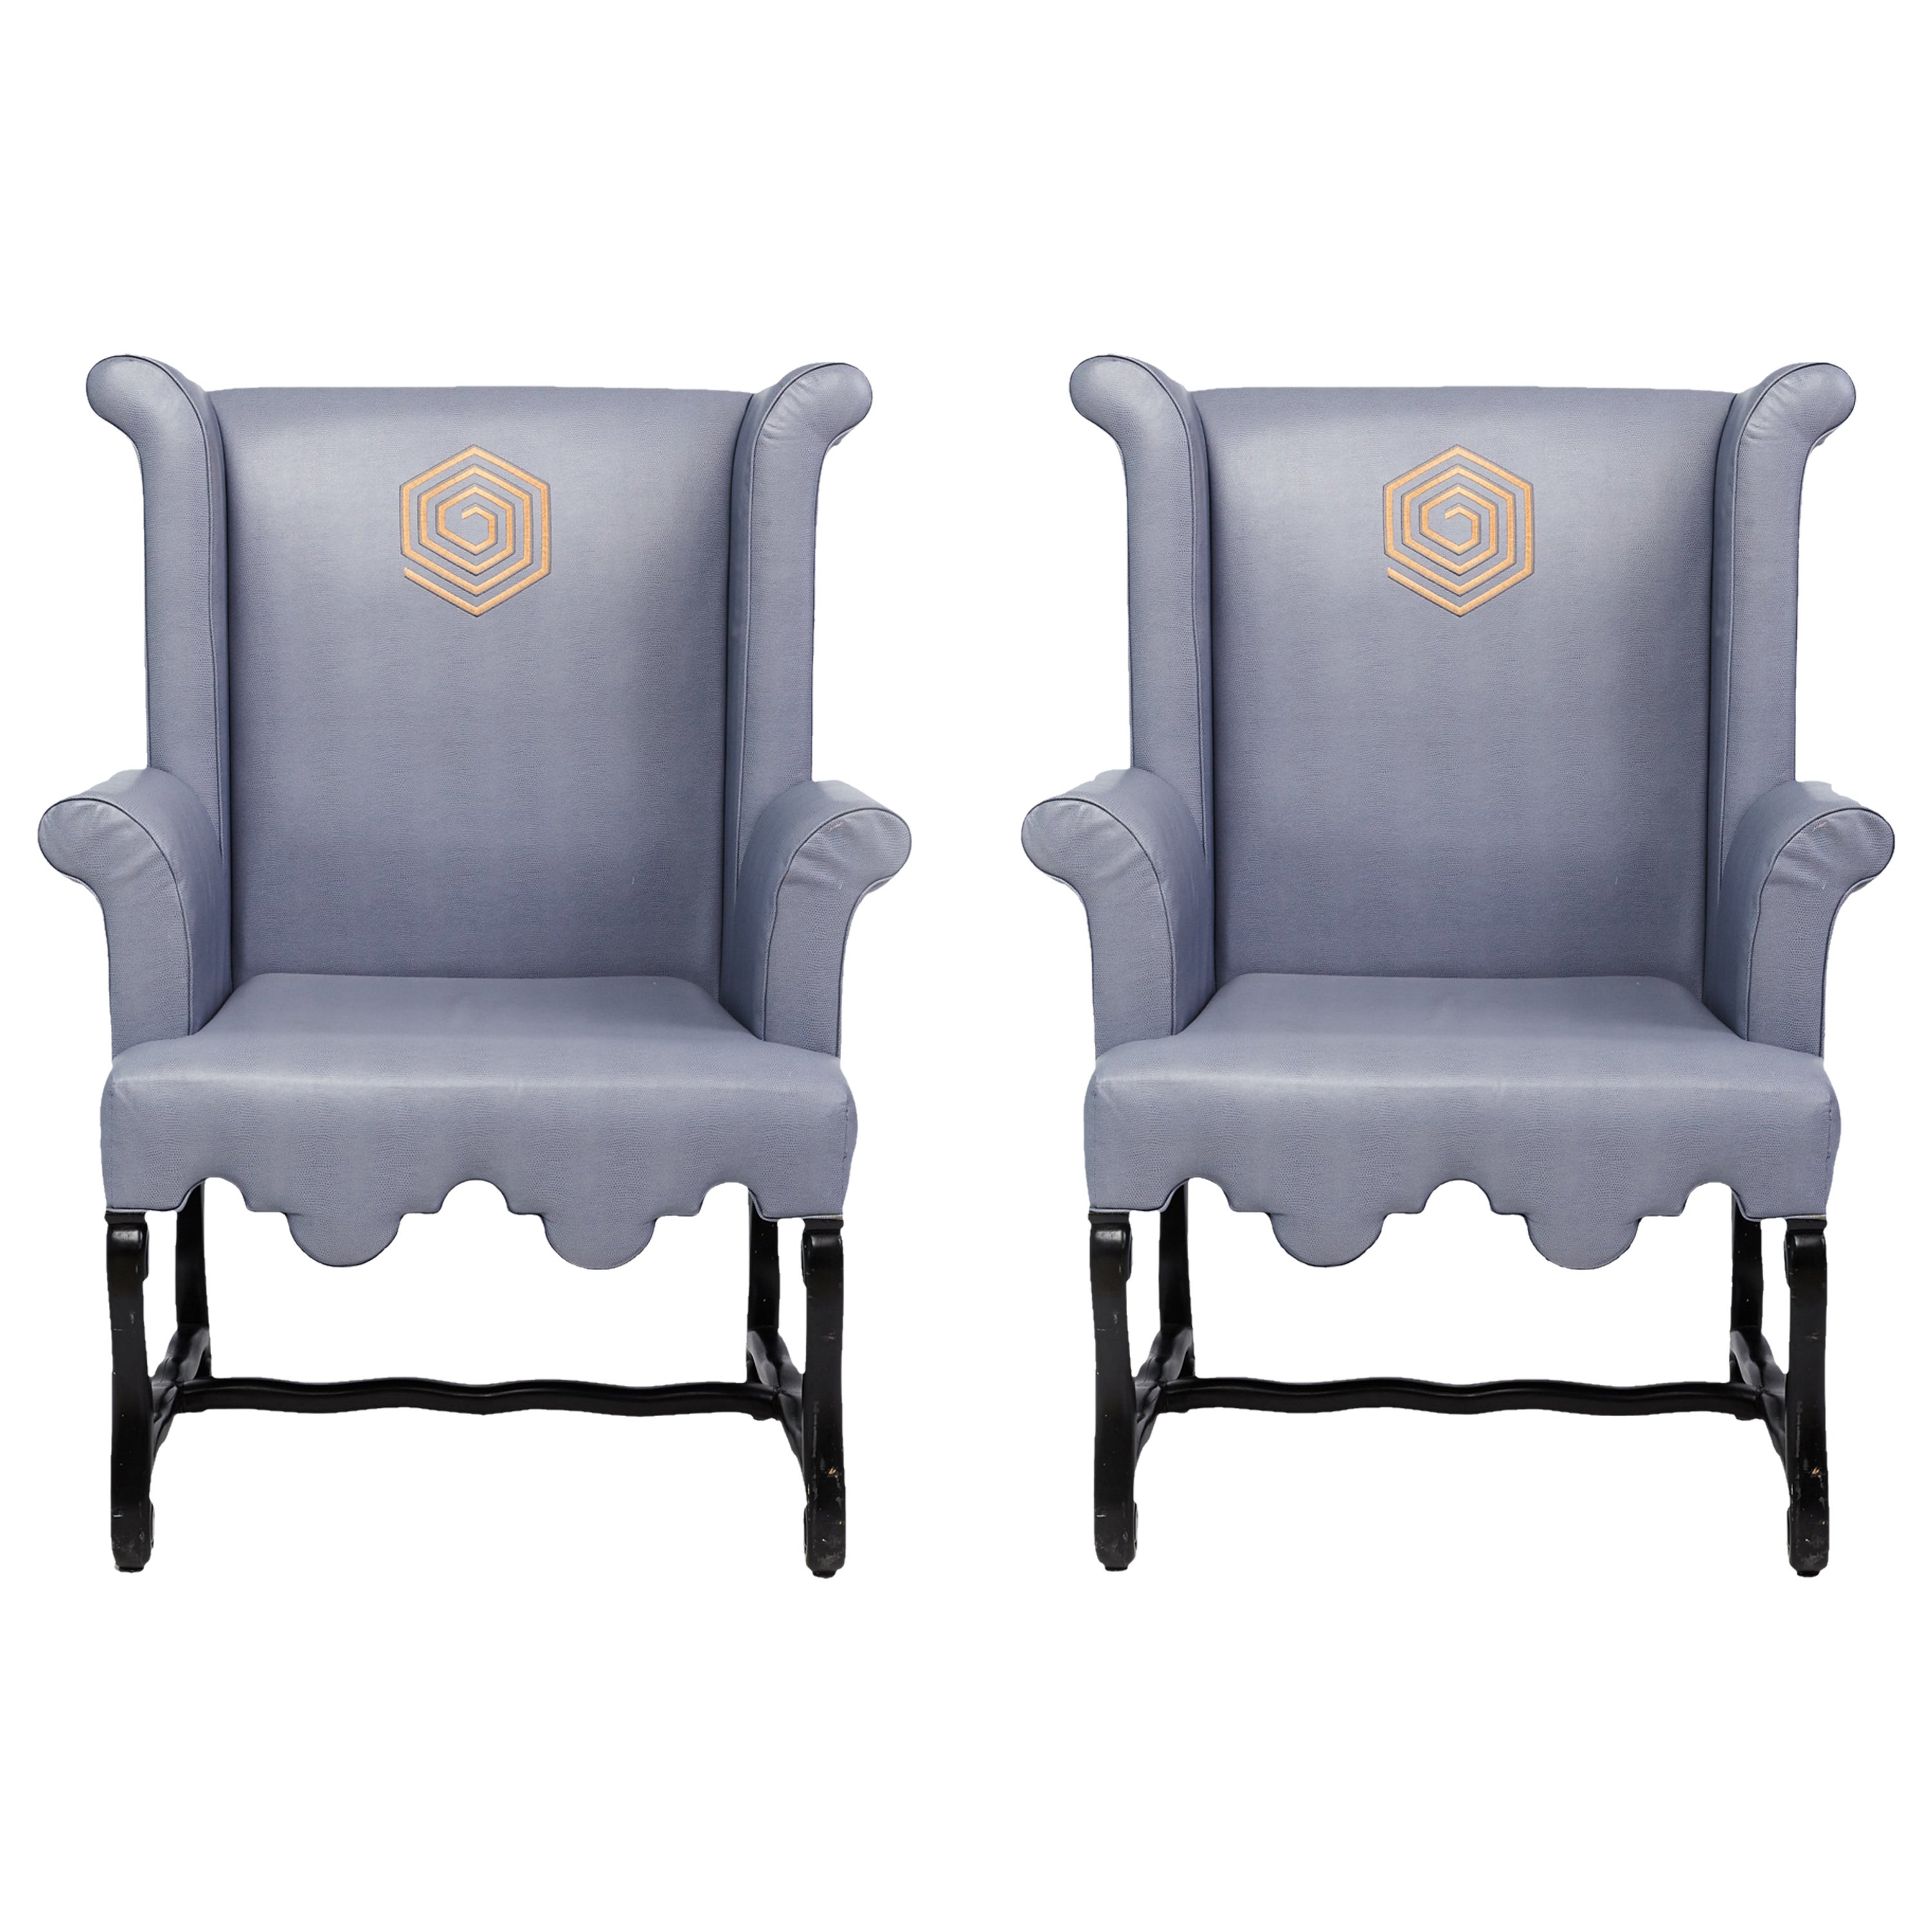 Custom Wingback Chairs By Kelly Wearstler Designed For The Viceroy Miami At 1stdibs